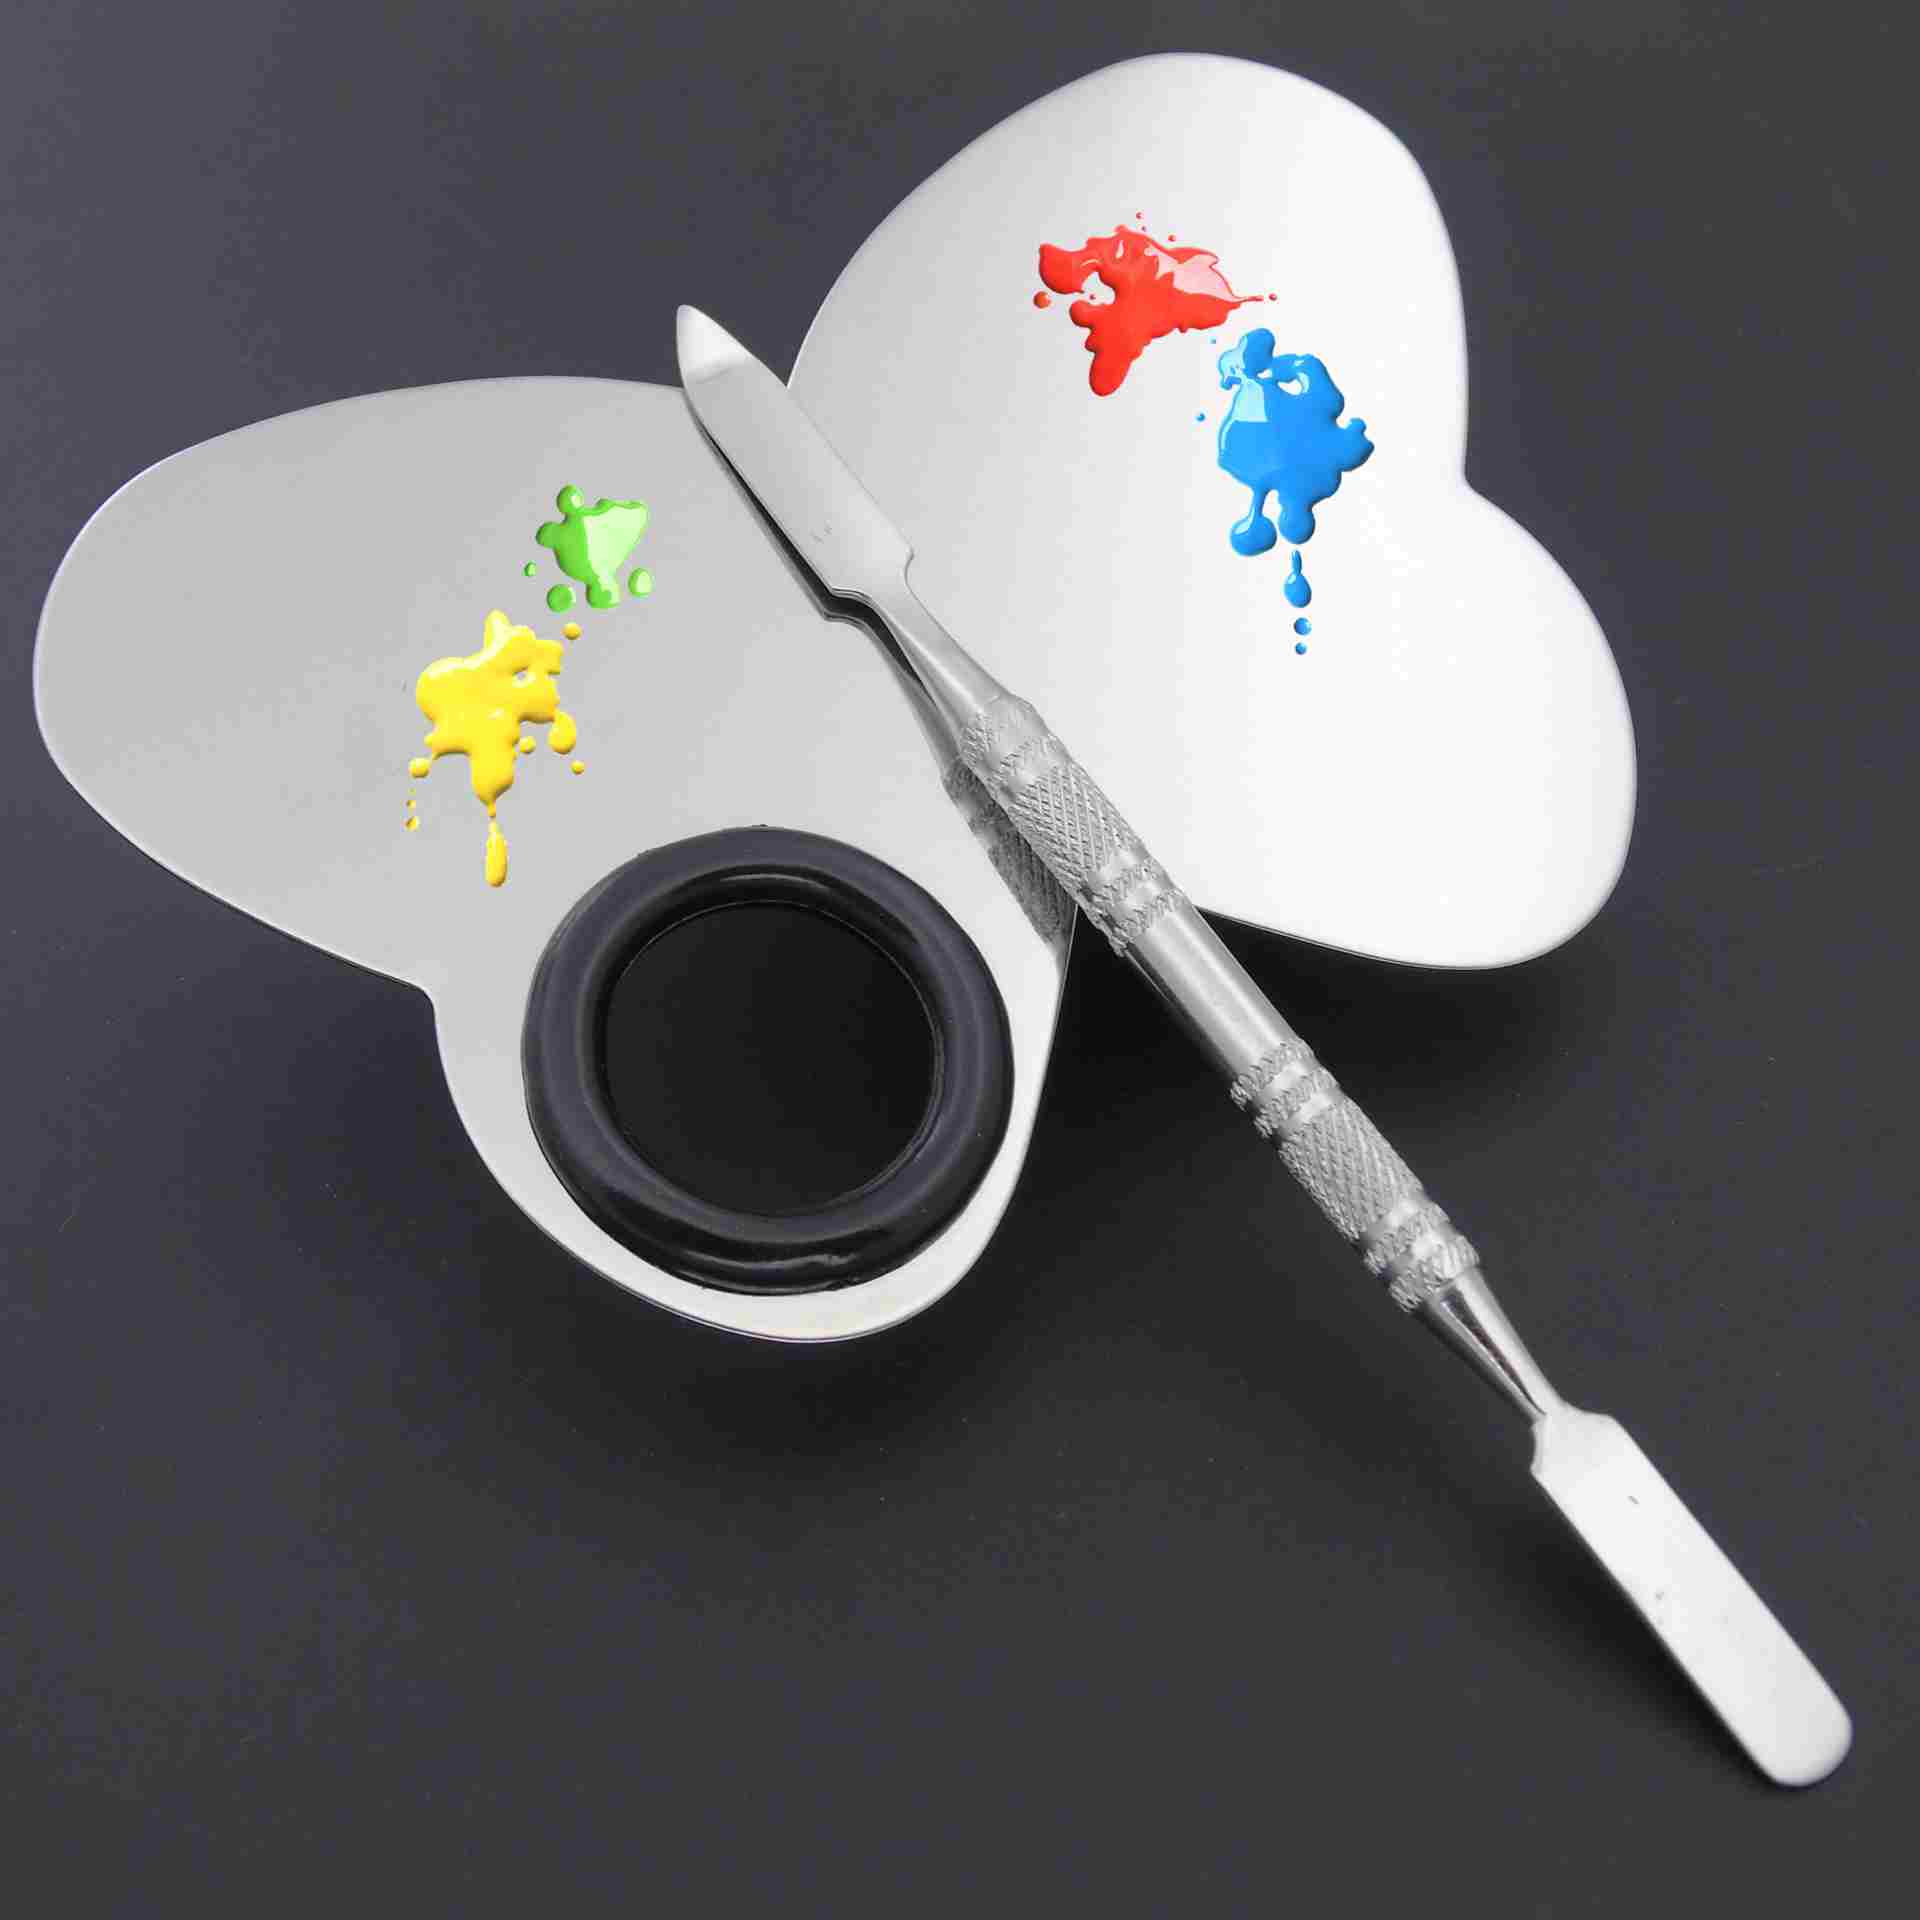 Online color mixer tool - Stainless Steel Cosmetic Makeup Palette Plate Beauty Salon Color Cream Mixing Eyeshadow Mixer Tool With Spatula